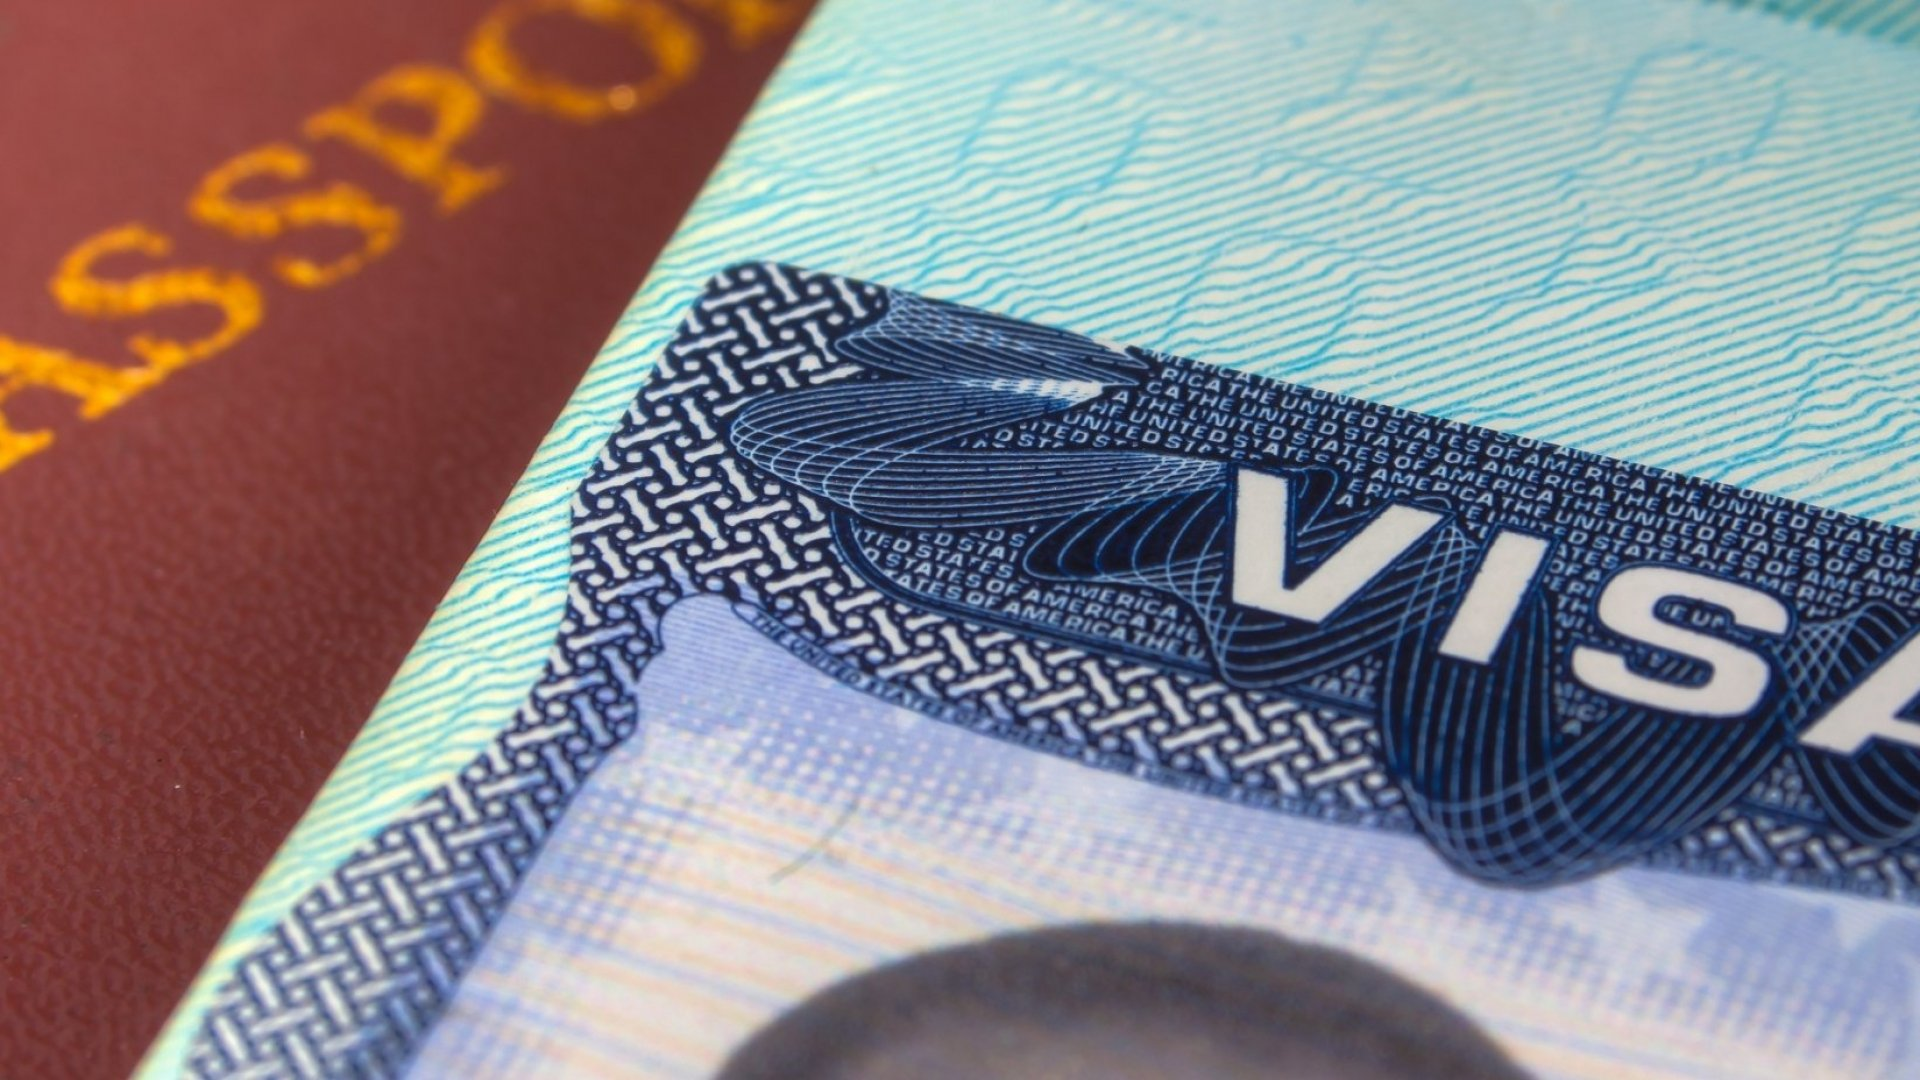 Why You Can't Expedite H-1B Visas Until 2019